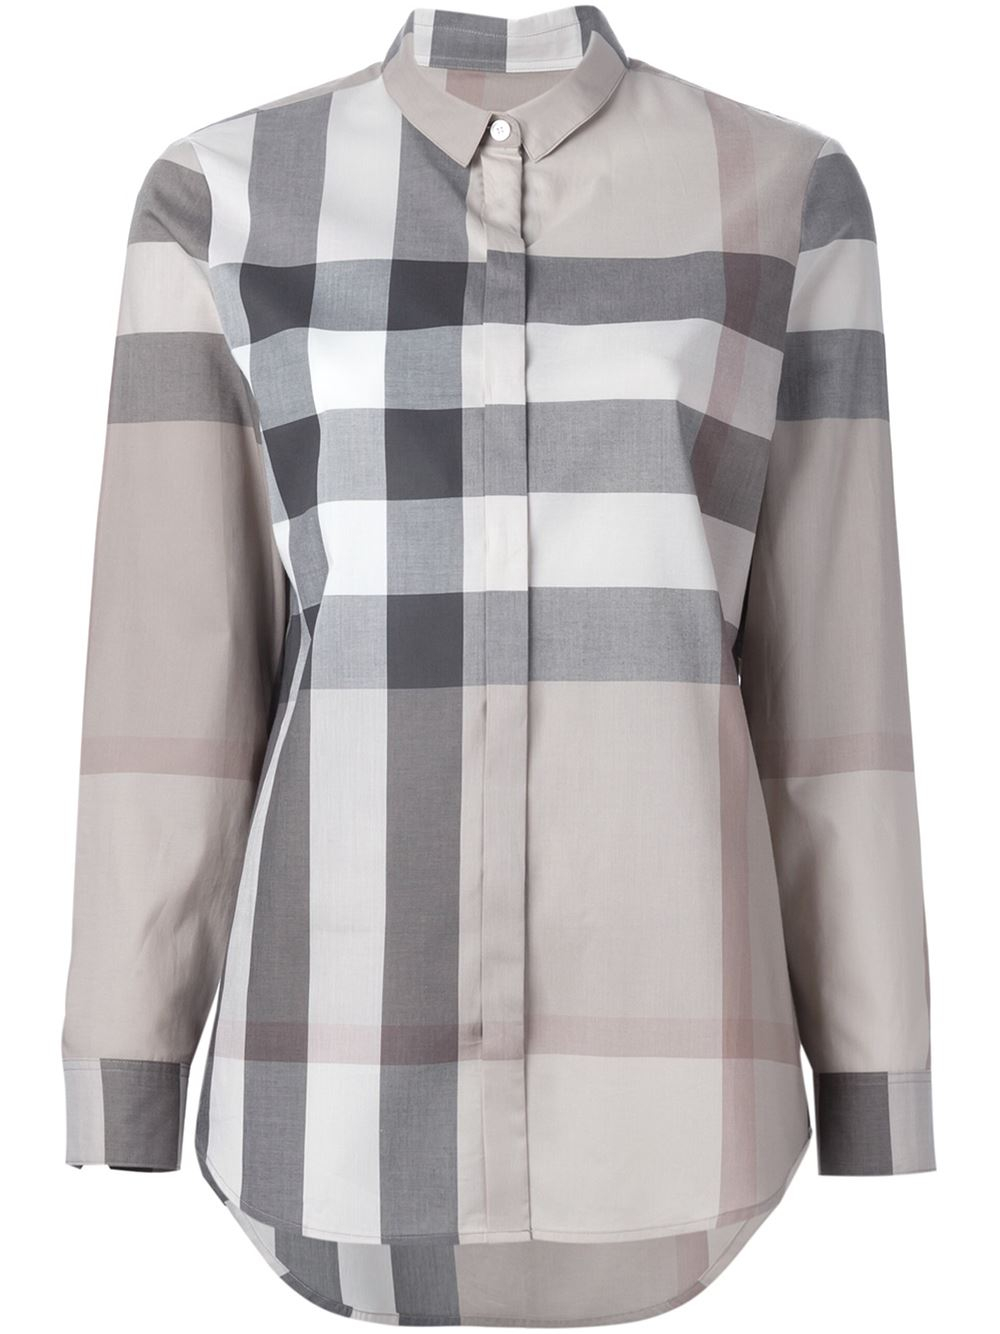 Burberry brit checked shirt in beige nude neutrals lyst for Burberry brit checked shirt